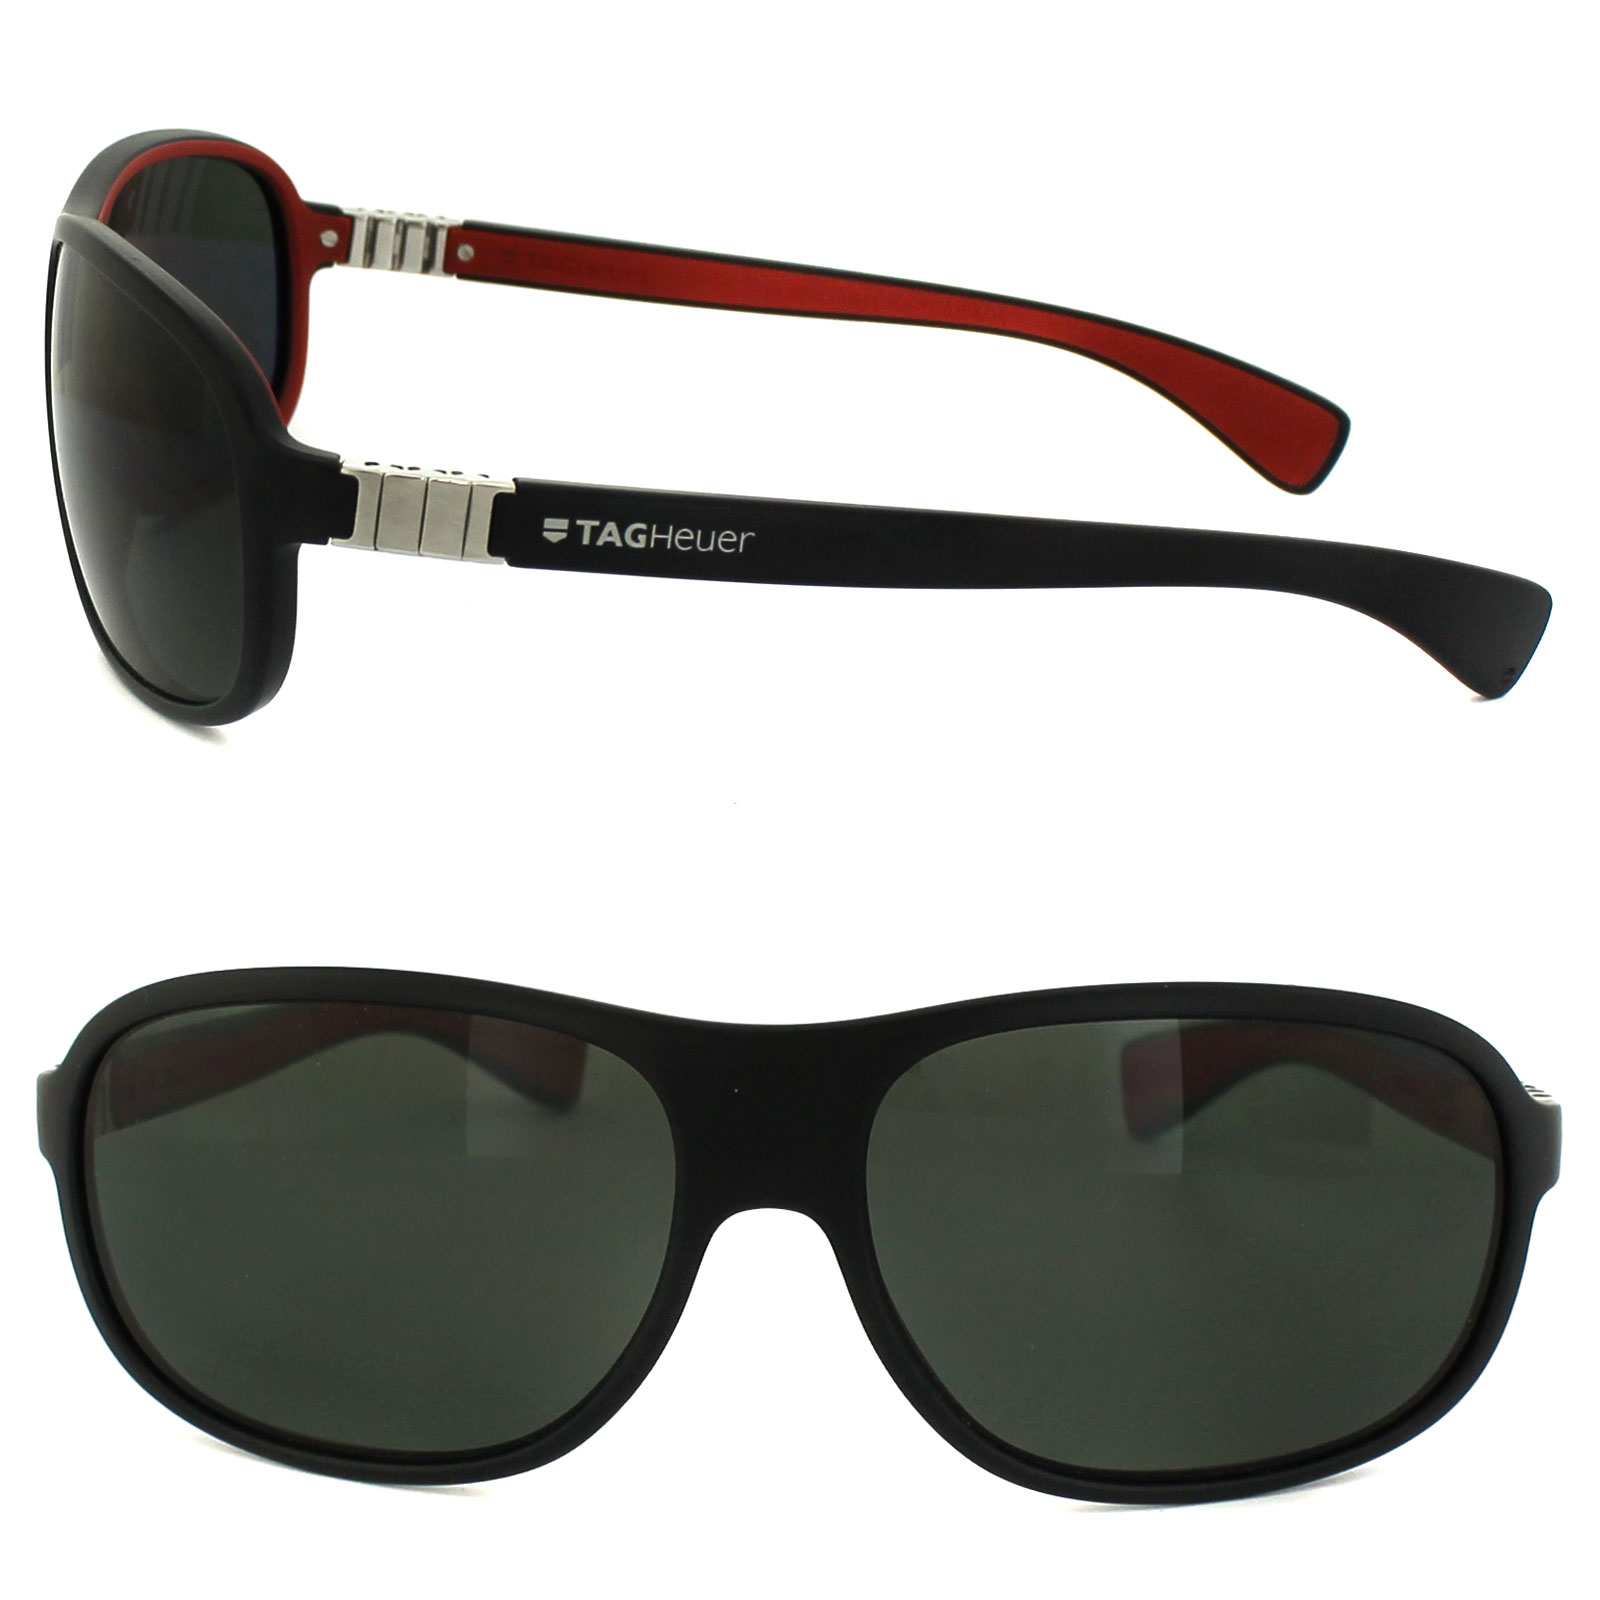 Details about Tag Heuer Sunglasses Legend 9301 102 Pure & Black & Red  Precision Grey Polarized